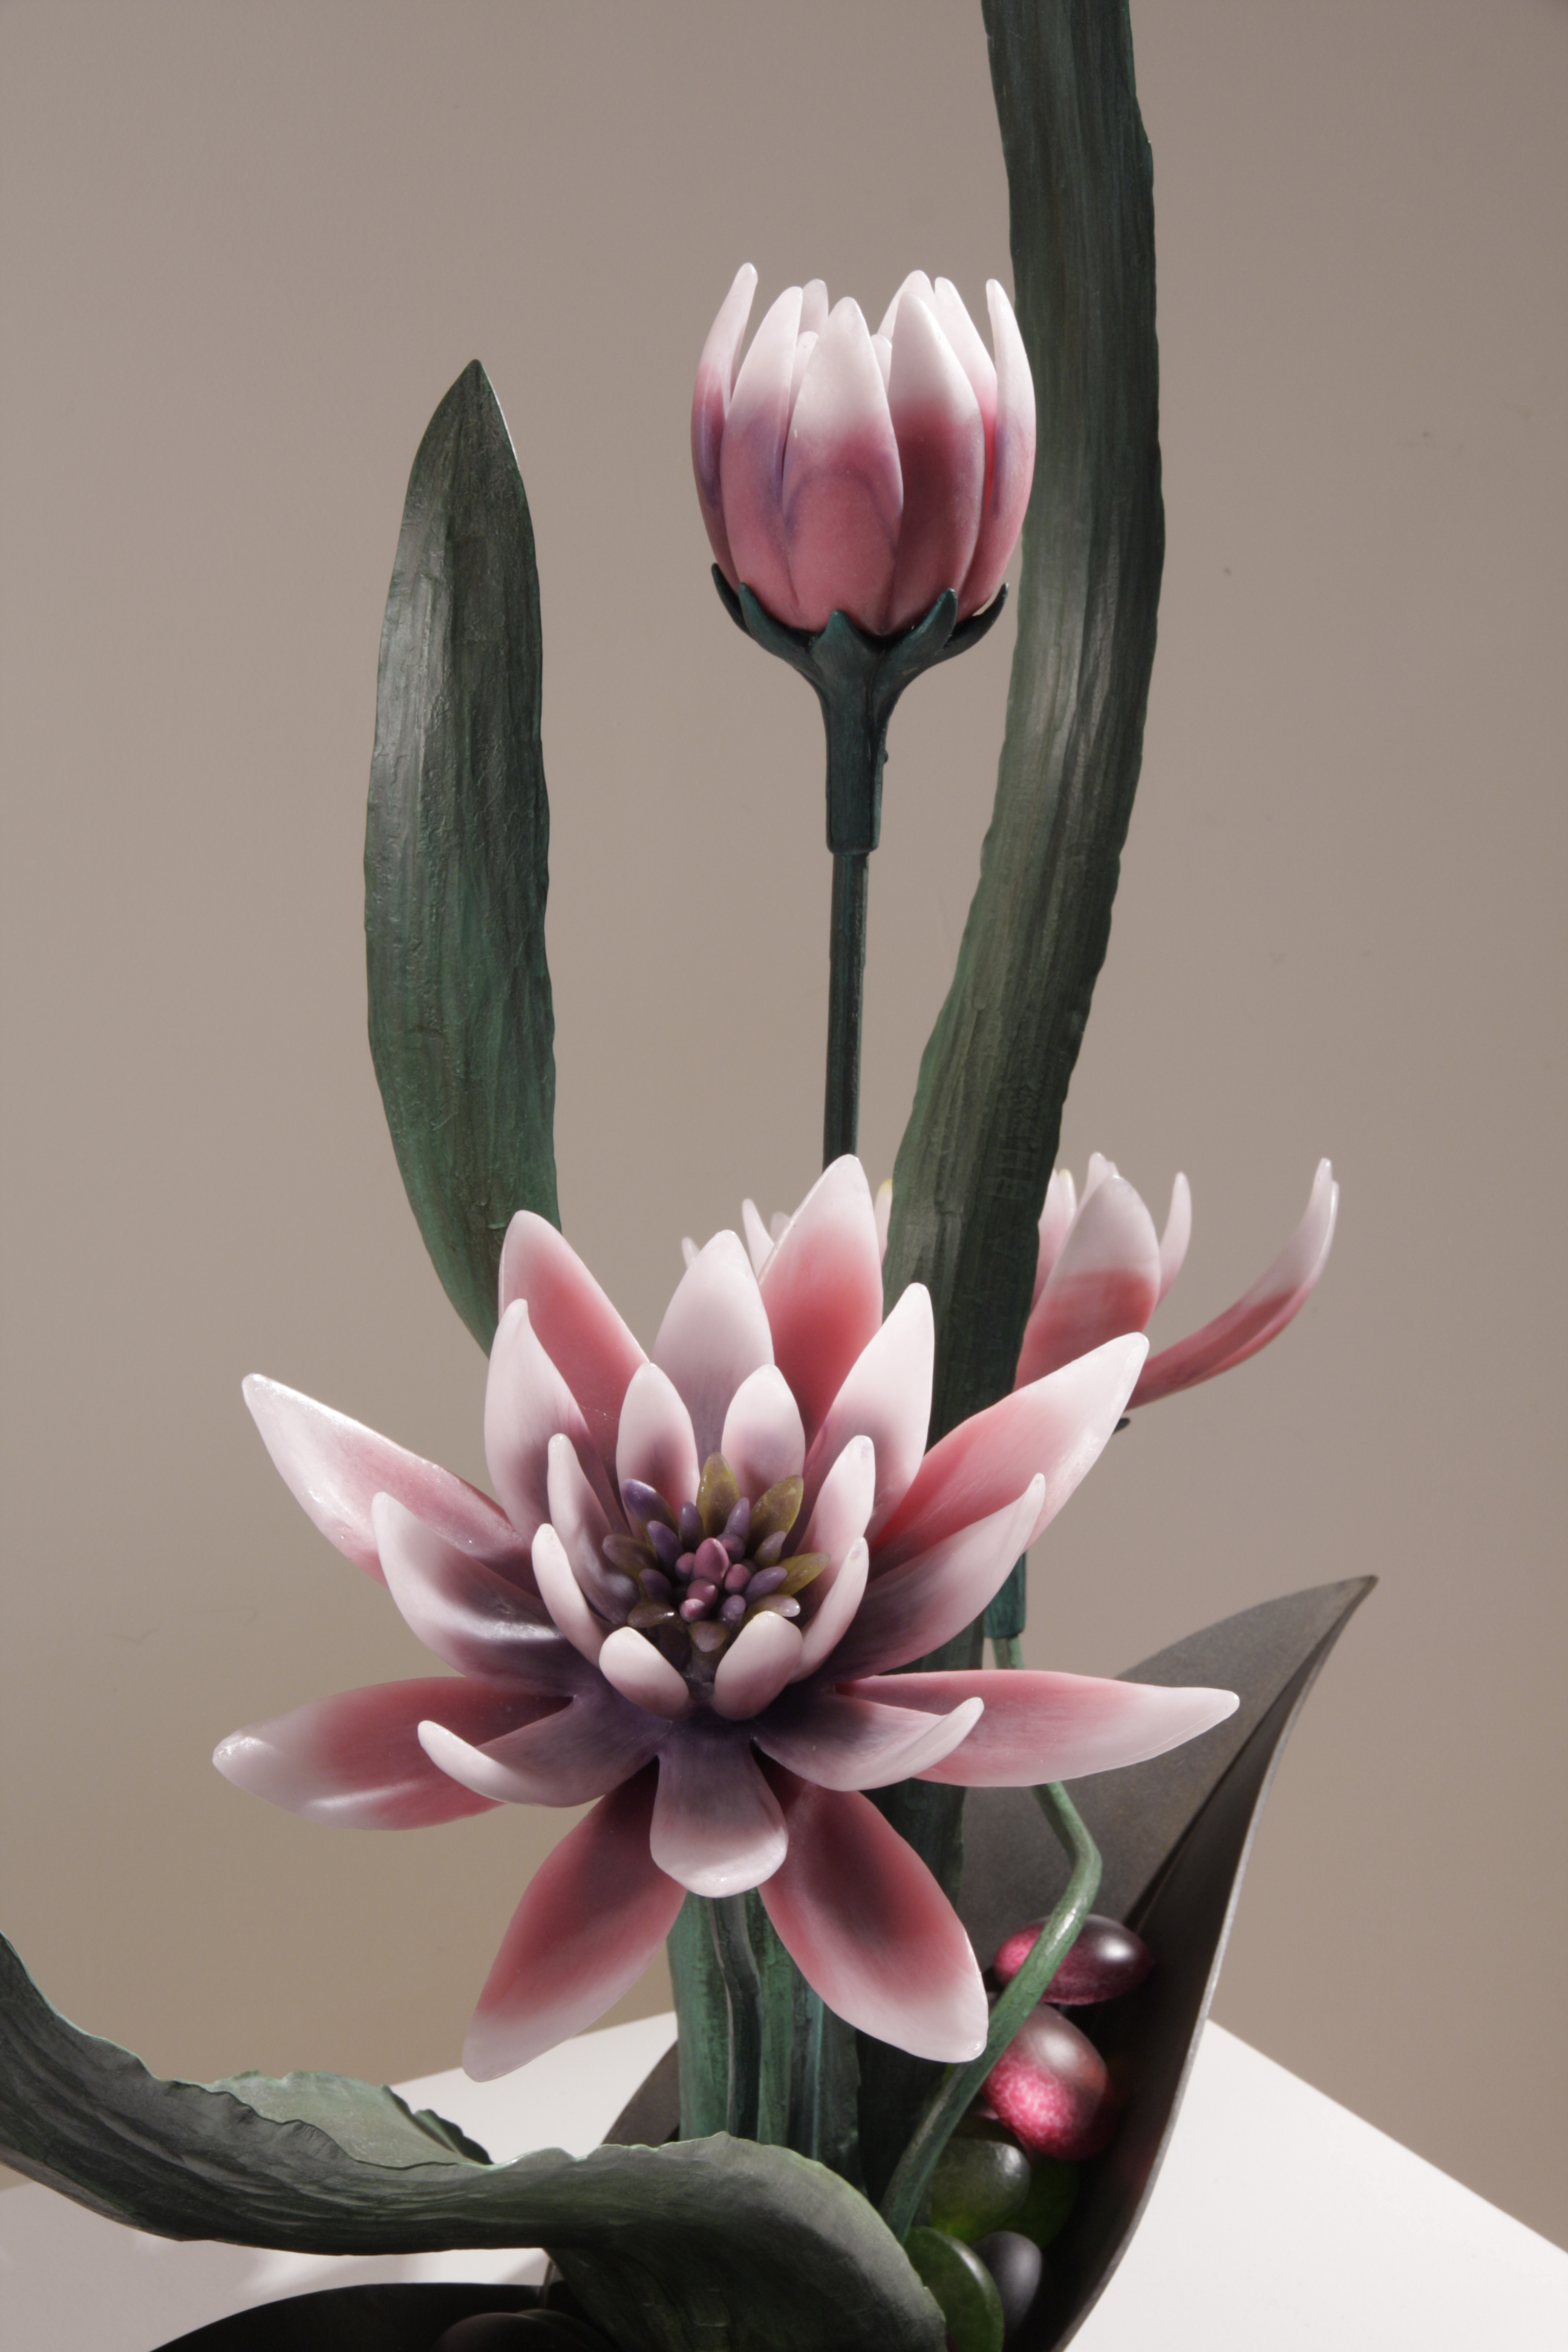 Close up of sculptural flower arrangement in cast glass with pink flowers, green steel leaves, boat shaped vase in deep brown.